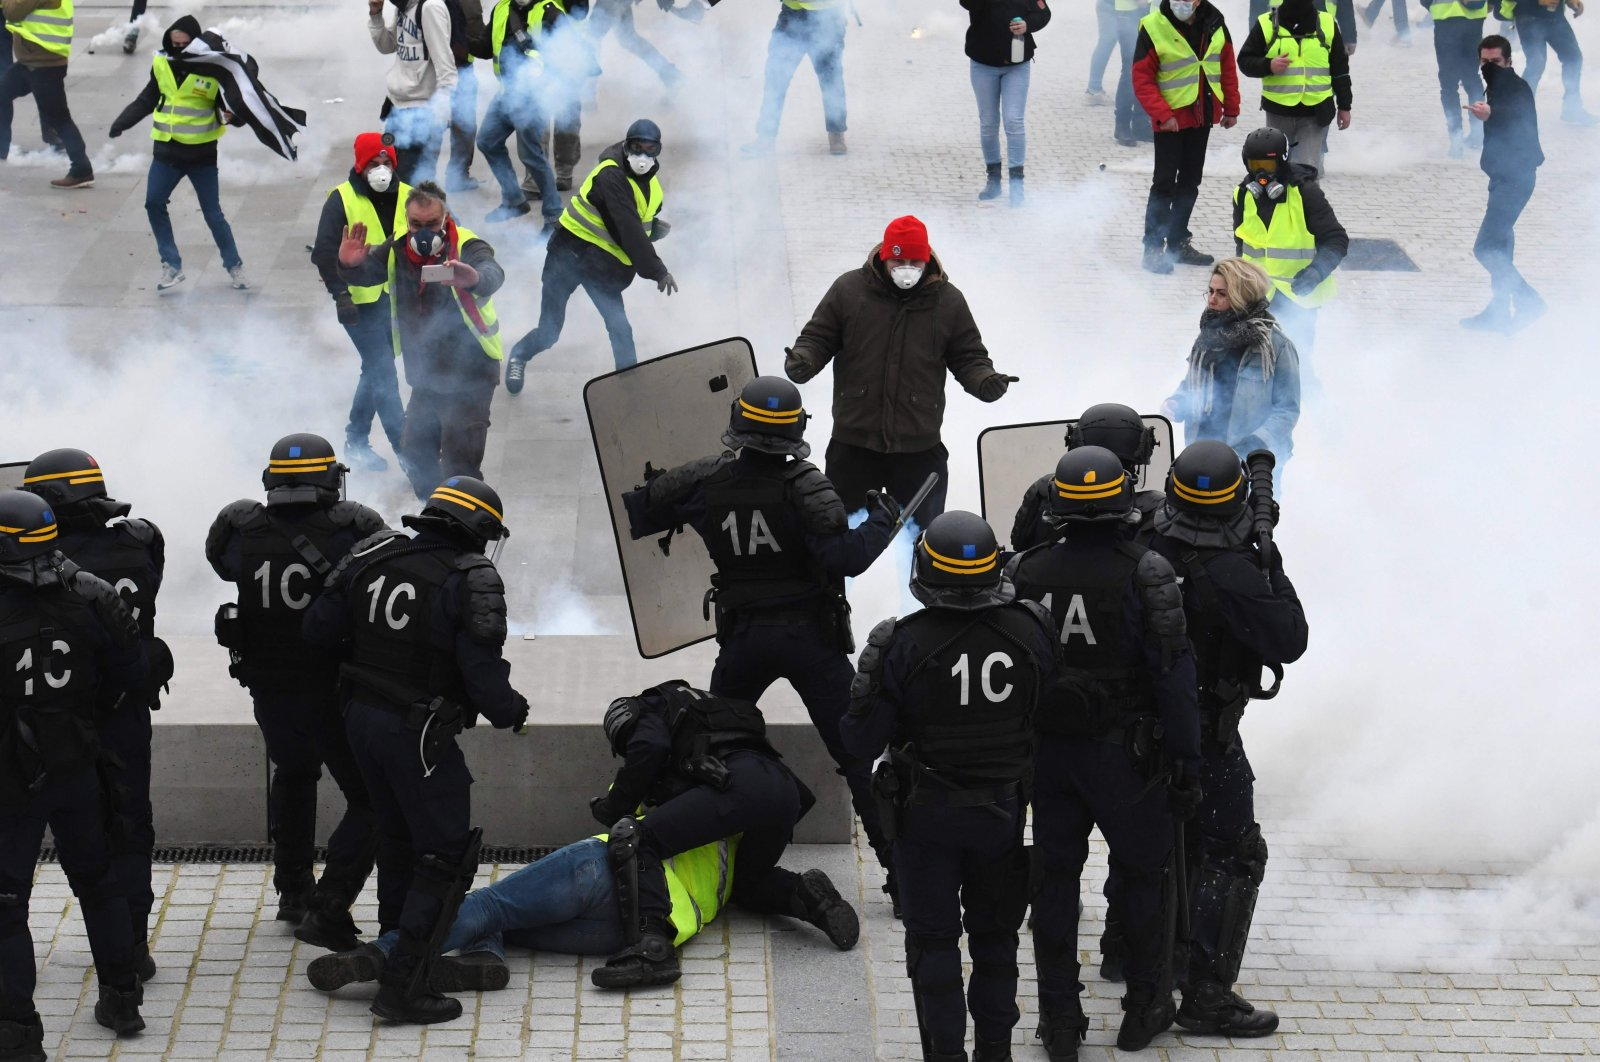 Protesters clash with riot police during anti-government demonstrations called by the Yellow Vests, Lorient, France, Feb. 9, 2019. (AFP Photo)